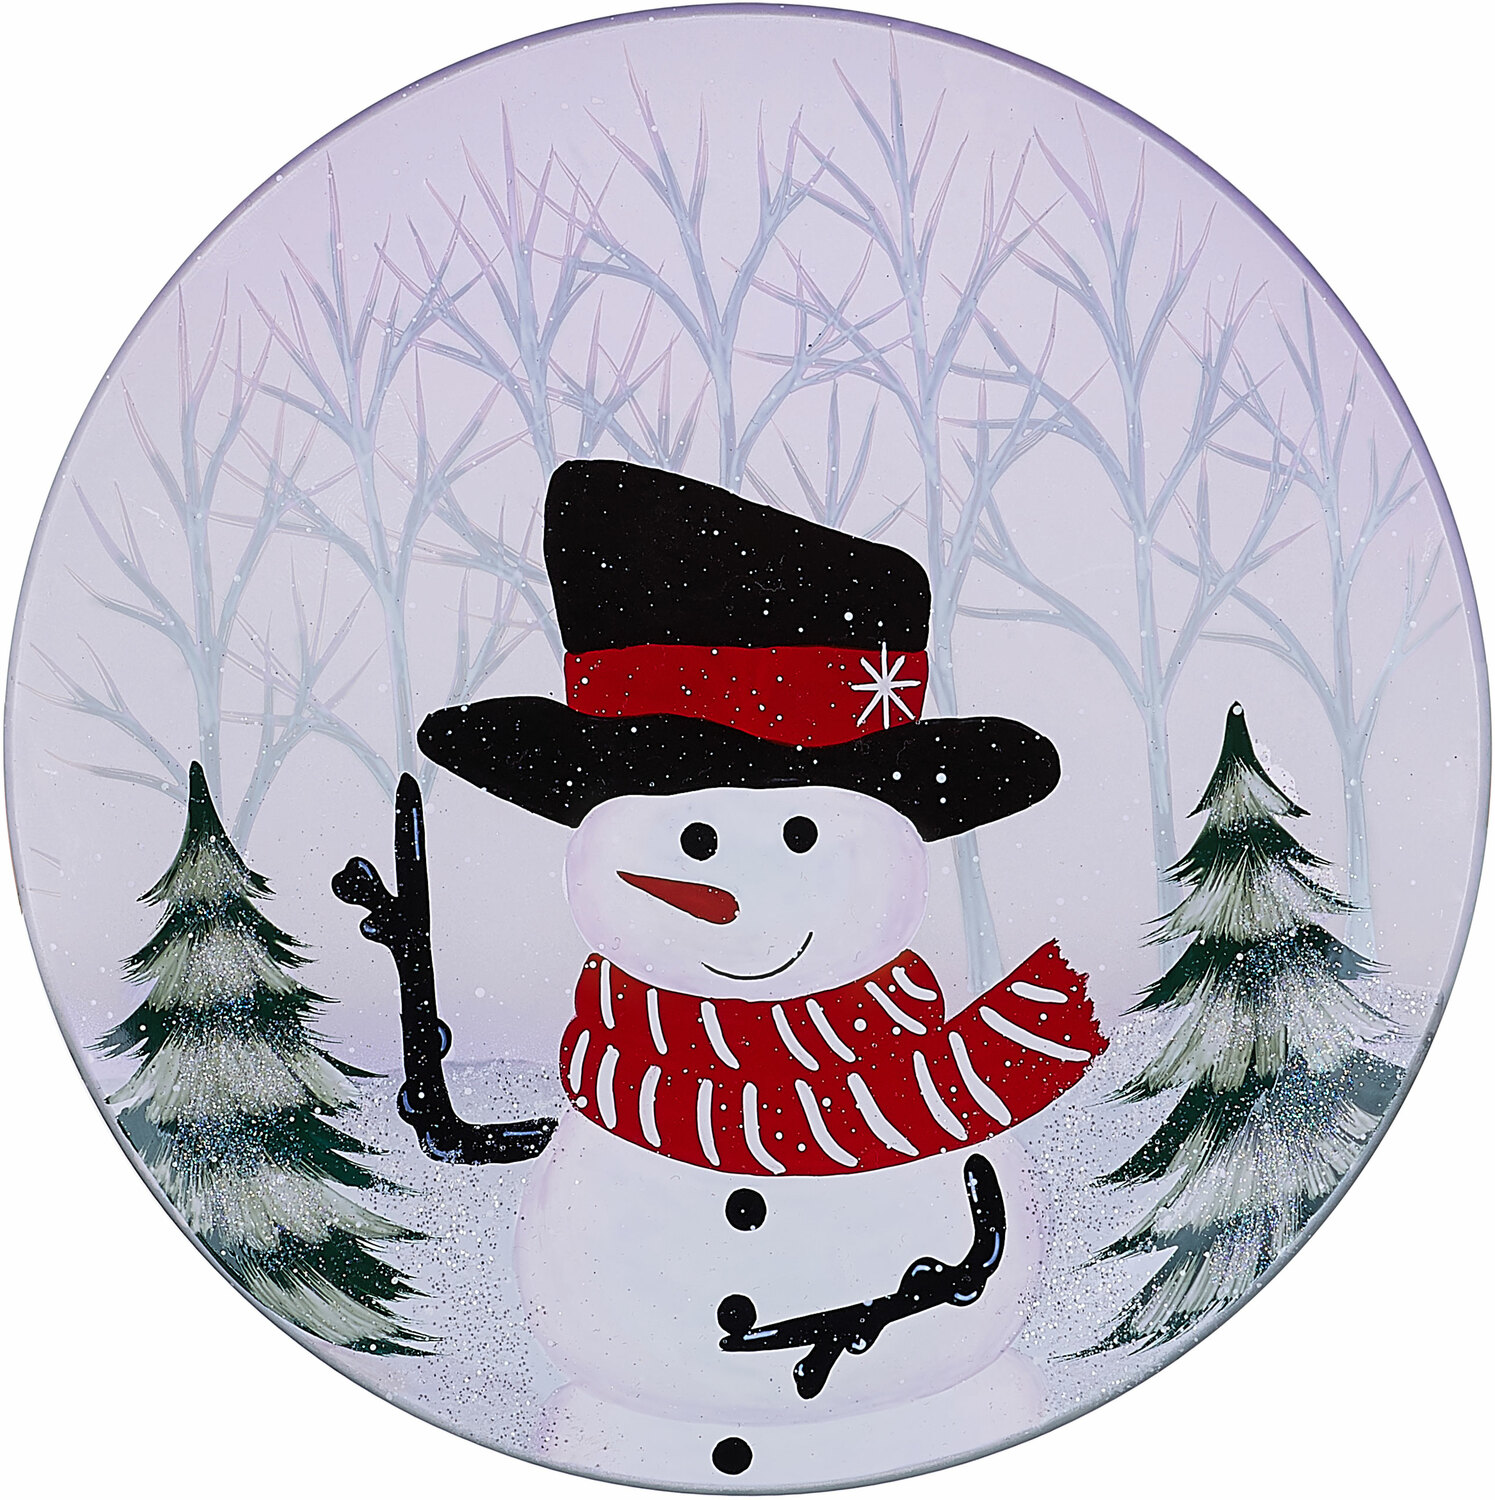 Snowman by Candle Decor - Snowman - Candle Tray